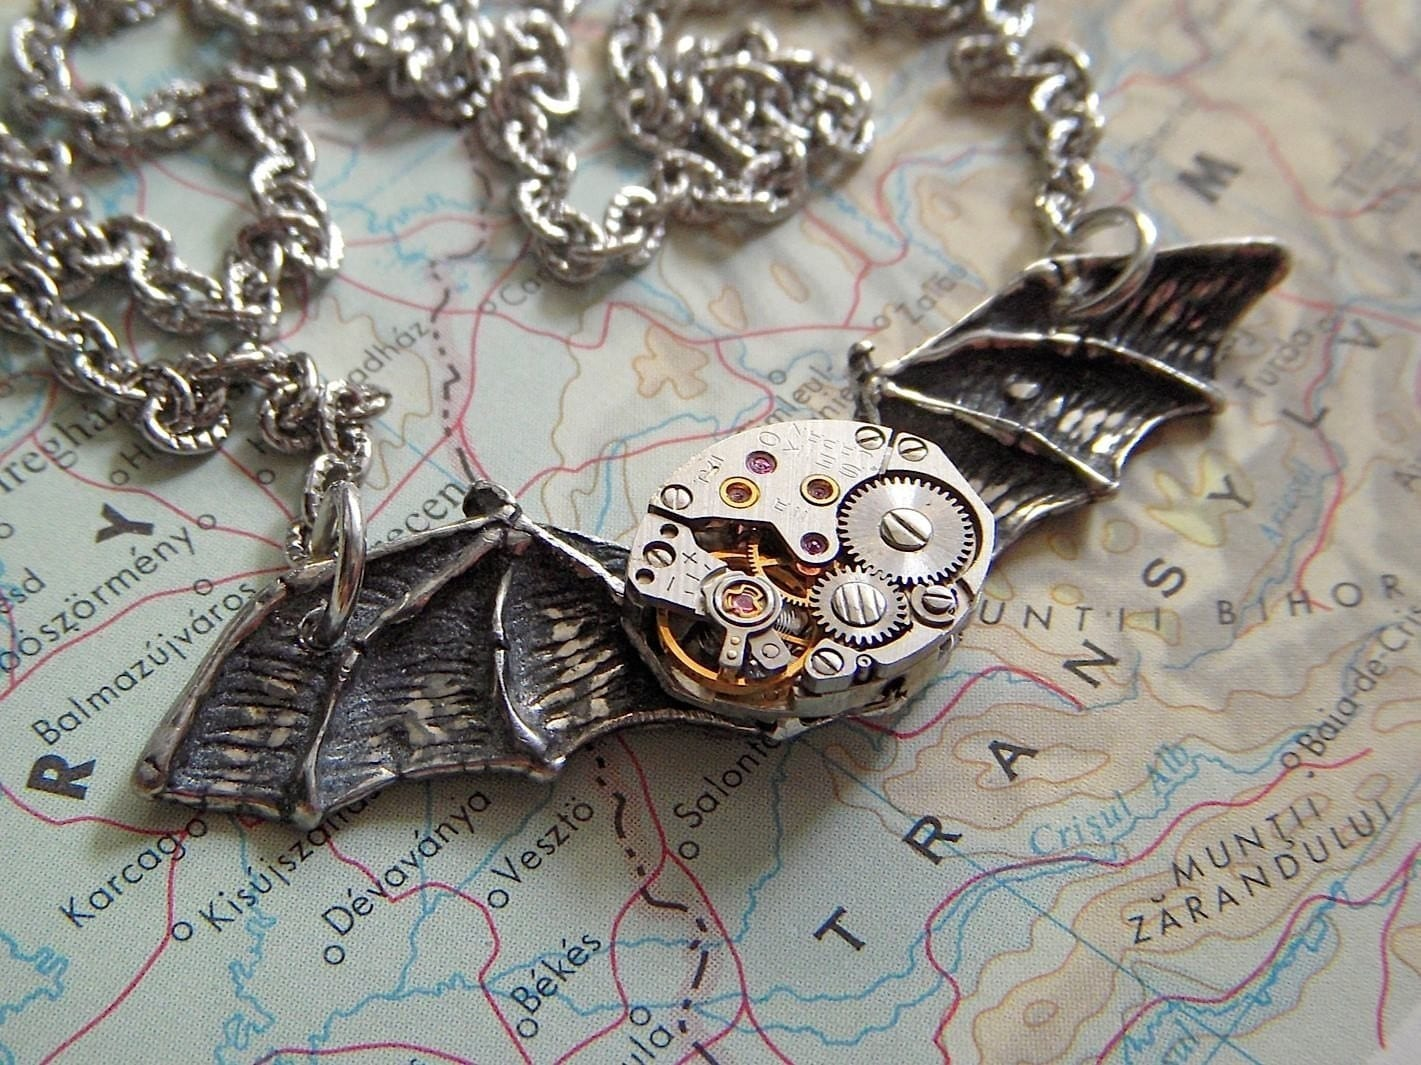 Steampunk Necklace COSMIC BAT WINGS - Gothic Victorian Noir Style - Vintage Watch Movement Silver Plated Chain - Original Design from Cosmic Firefly